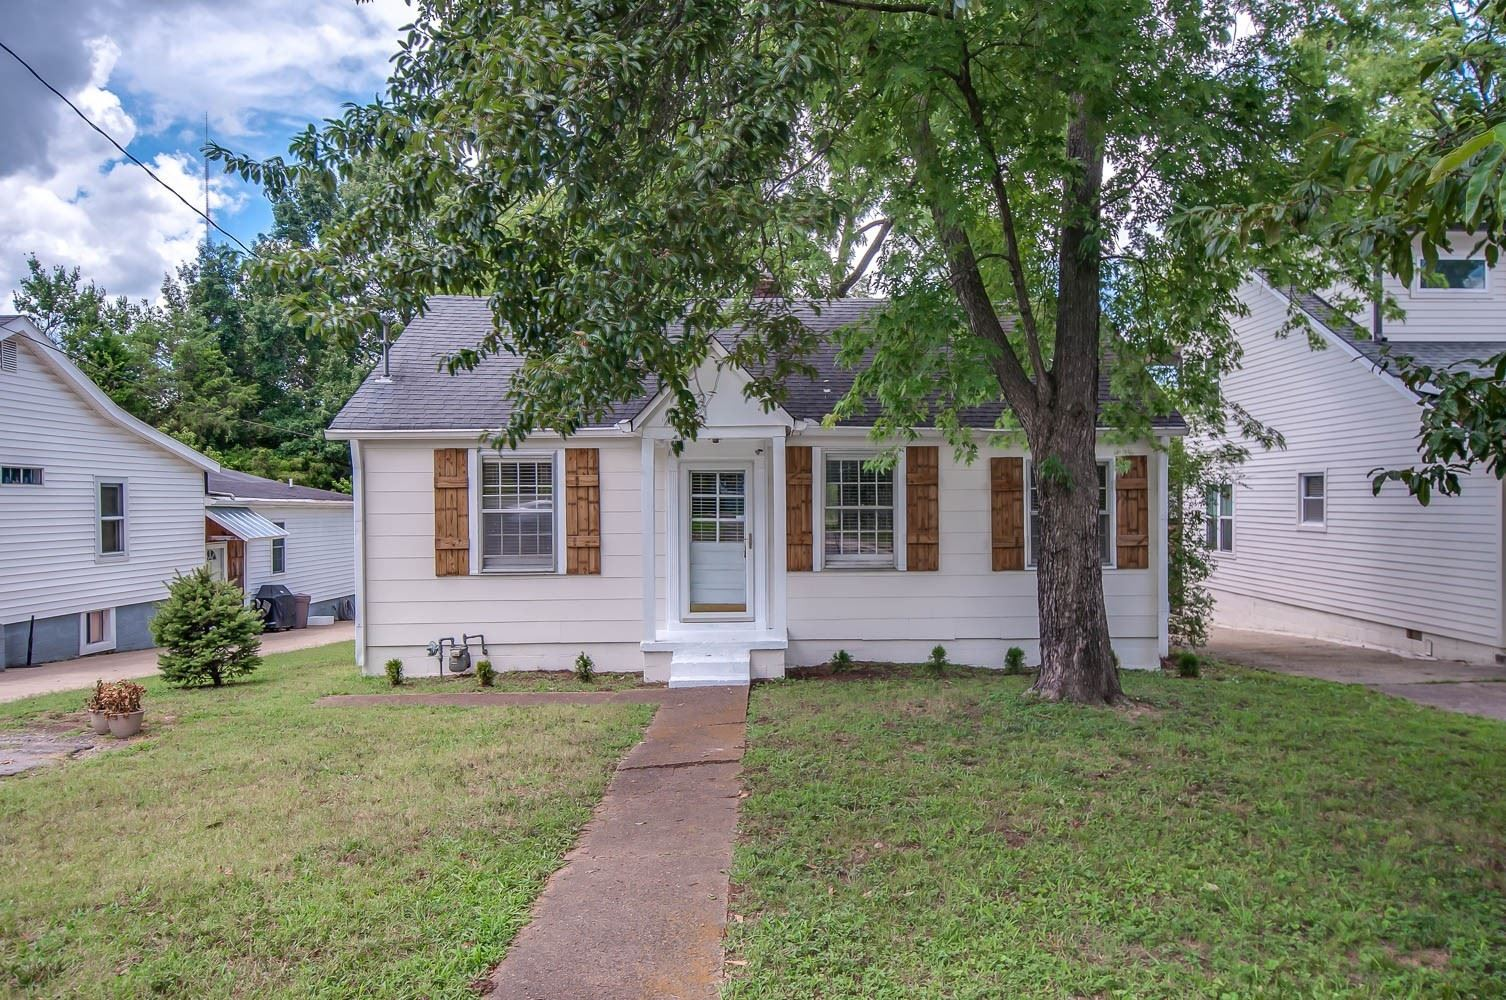 225 53rd Ave N, Nashville, TN 37209 - MLS#: 2177109